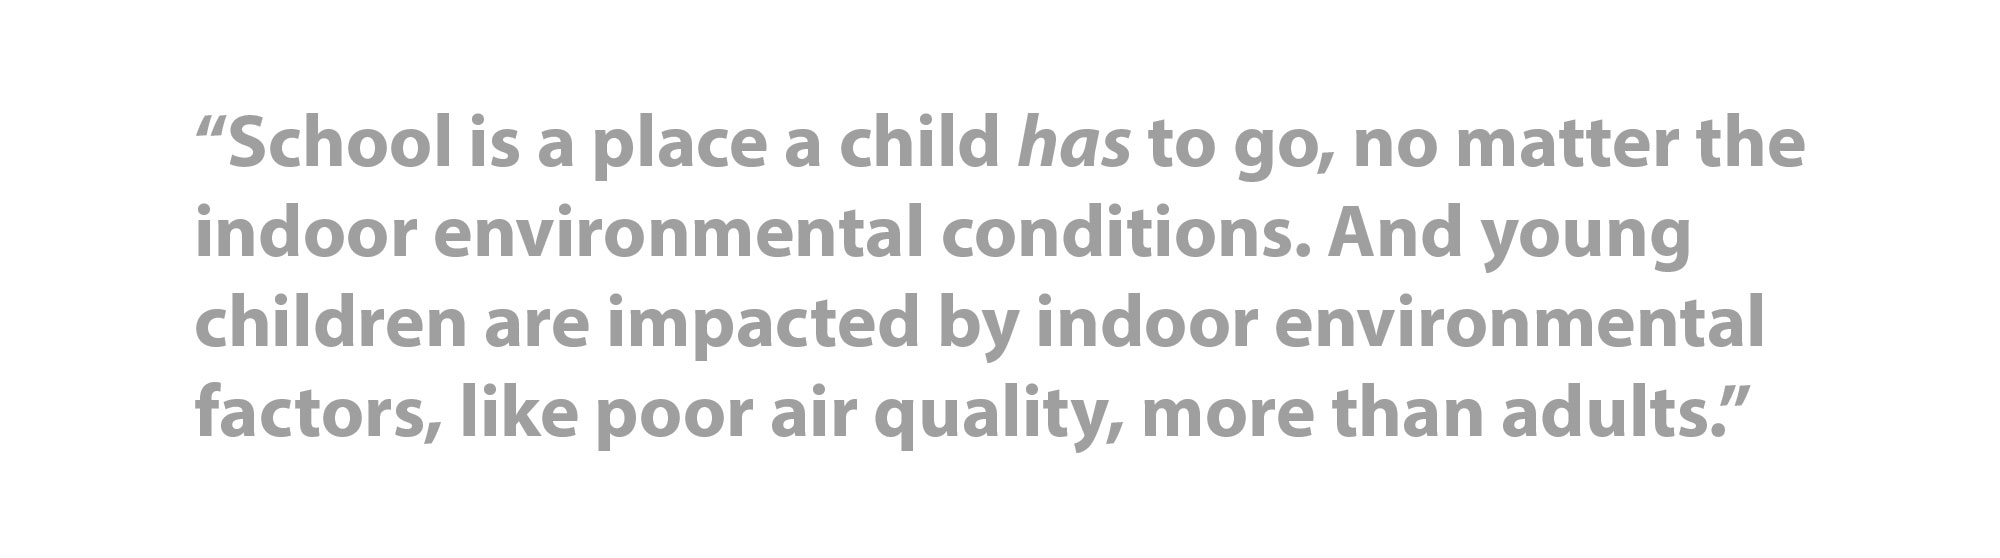 """School is a place a child has to go, no matter the indoor environmental conditions. And young children are impacted by indoor environmental factors, like poor air quality, more than adults."""